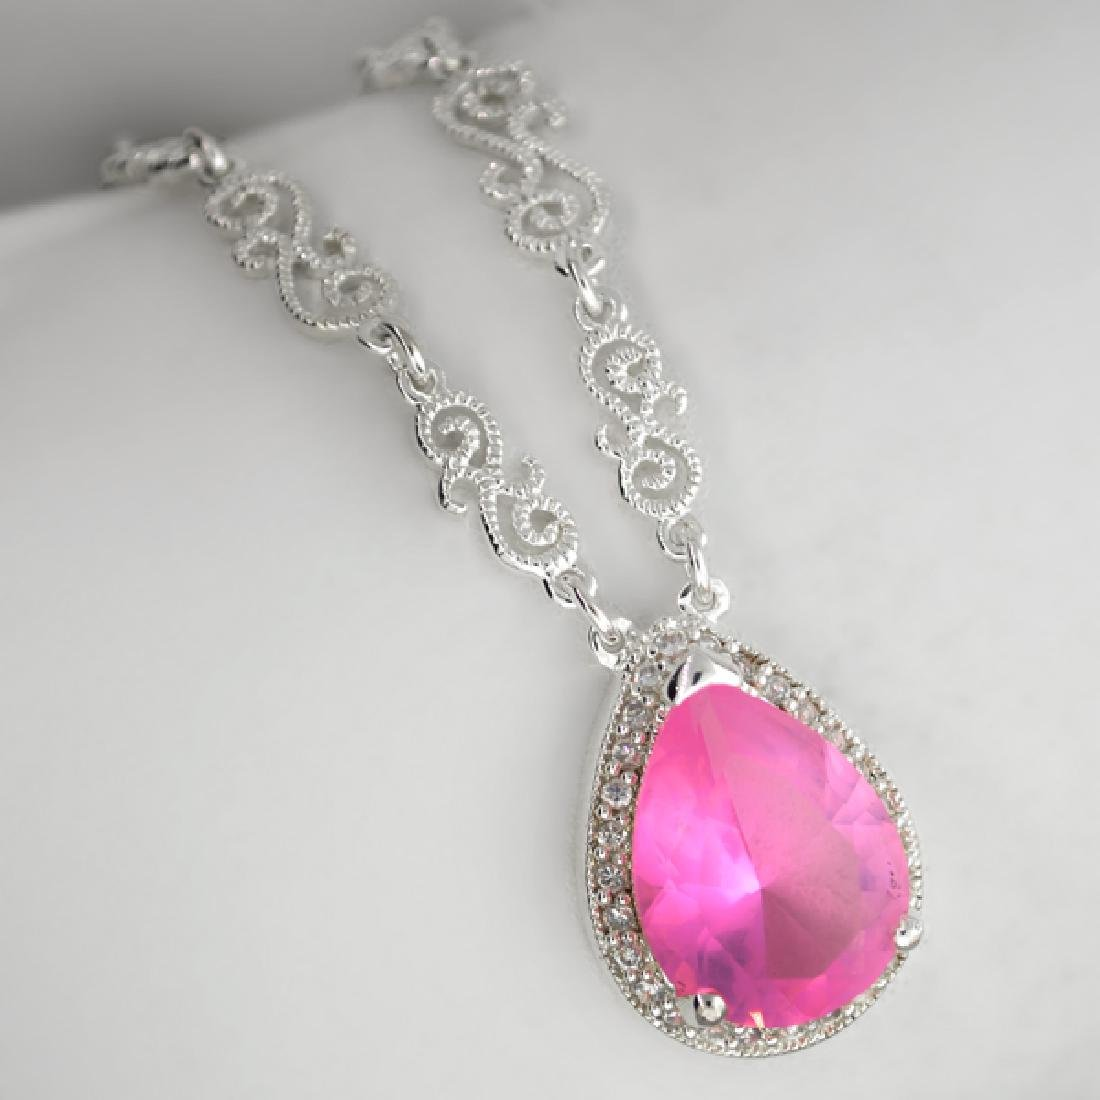 Fancy Colored French Cubic Zirconium Sterling Silver